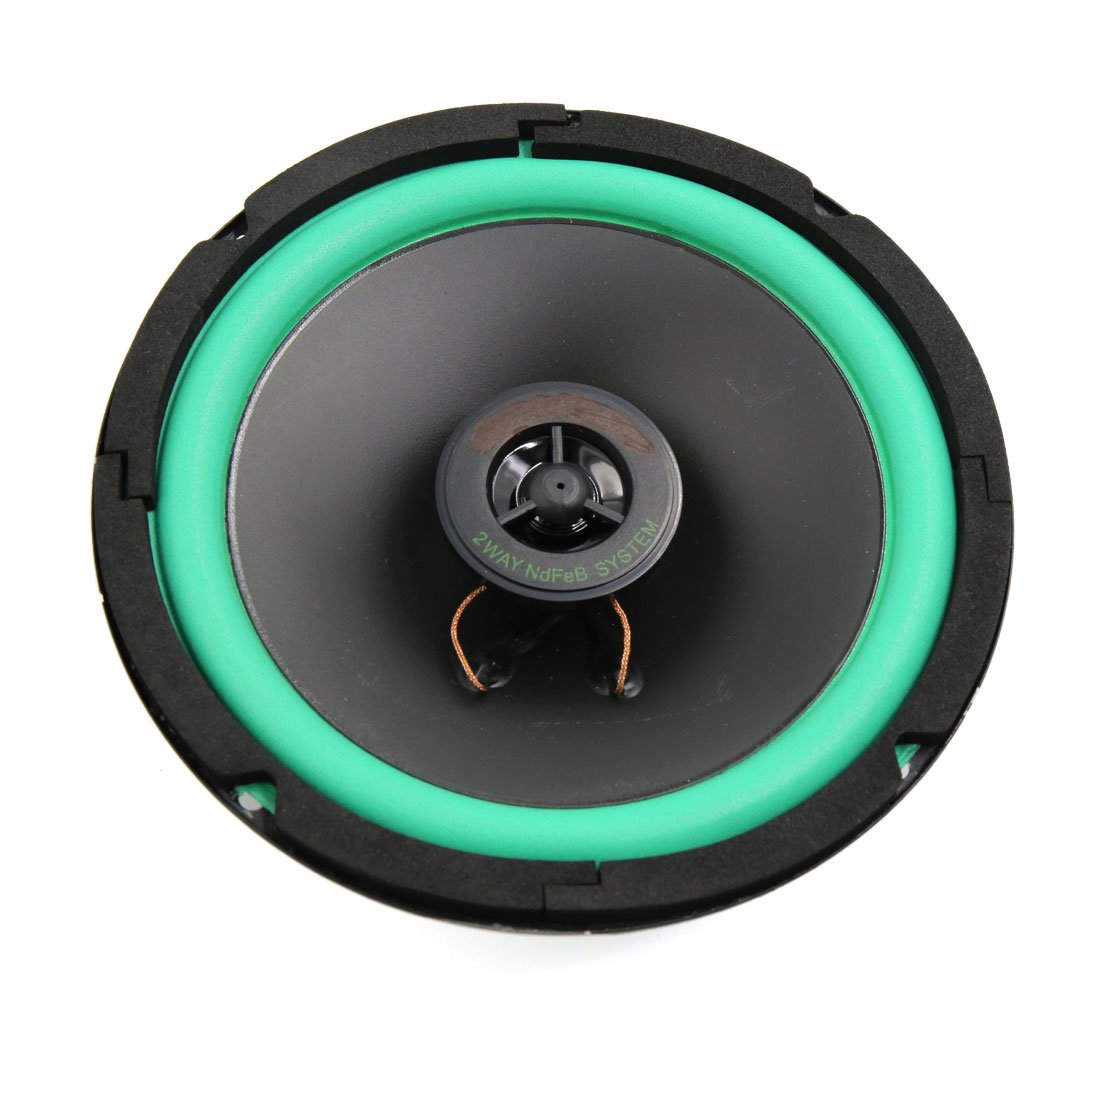 uxcell Round Shaped 6.5' Two Way Mounting Car Automotive Audio Speaker Horn Siren SYNCF2002519